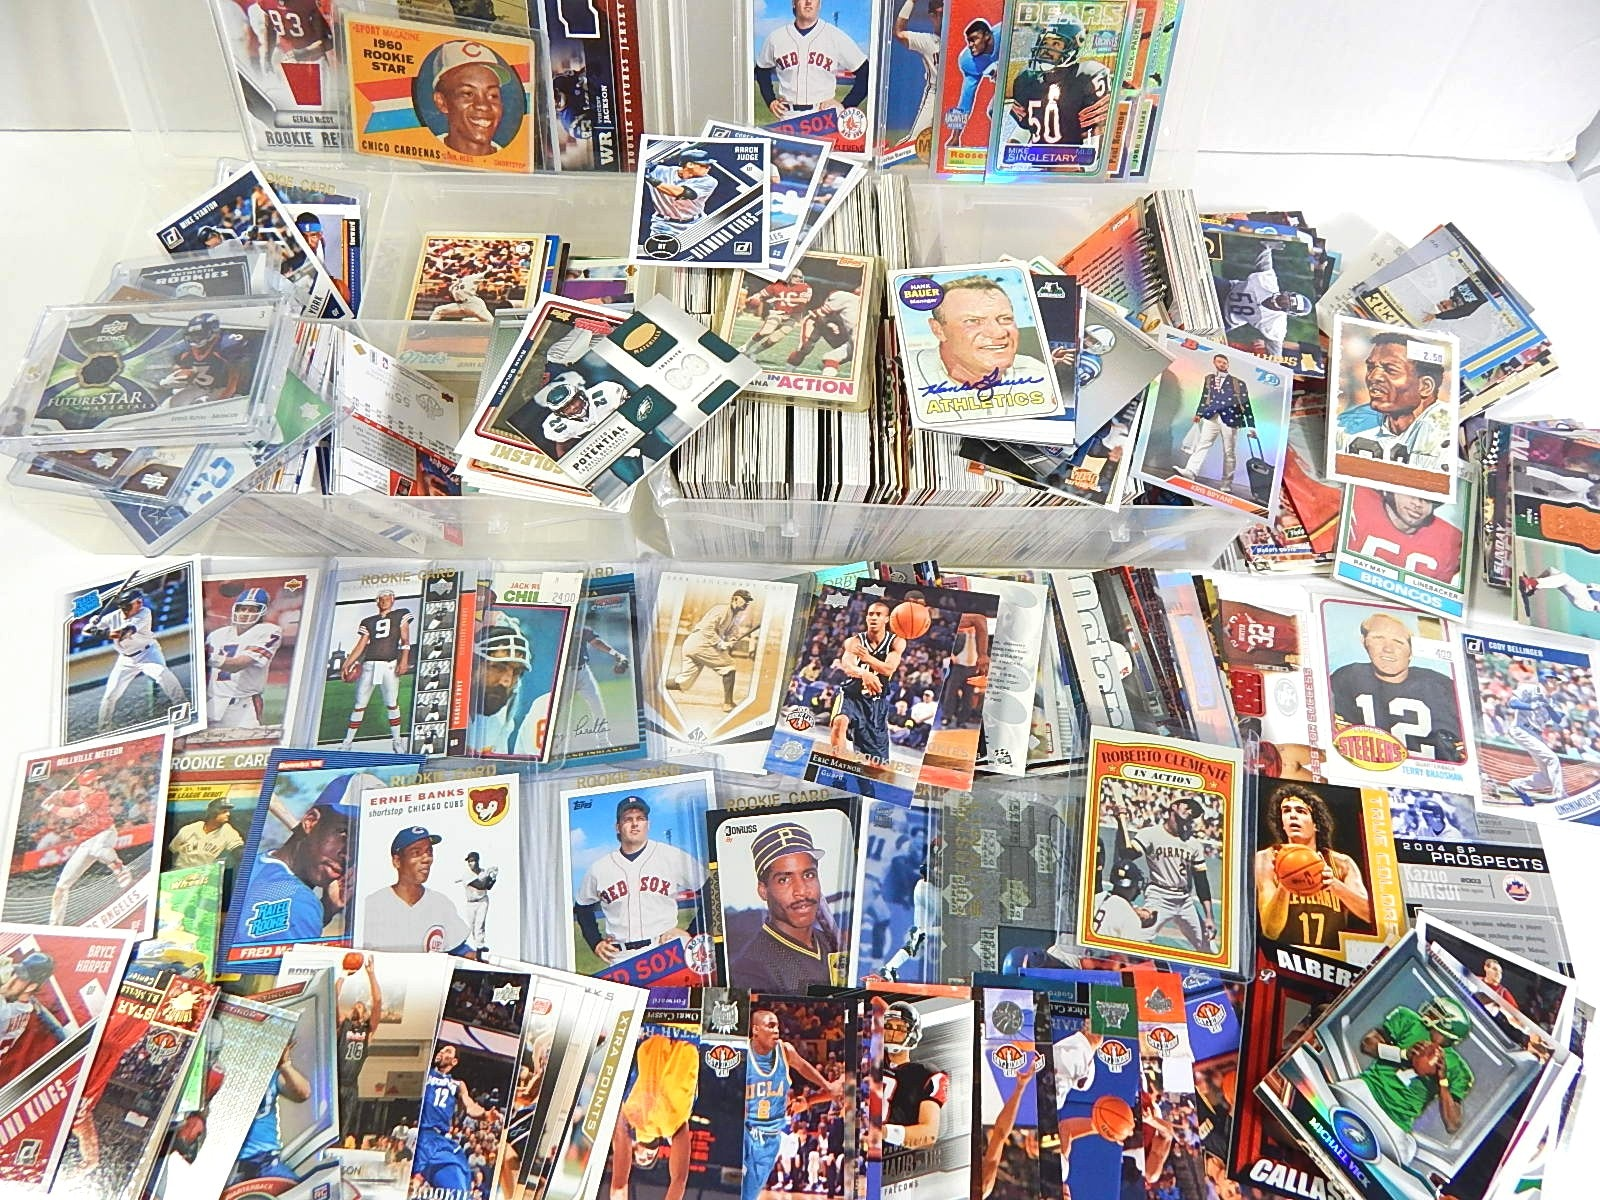 Collection of Baseball, Basketball, Football Cards - 1500 Card Count